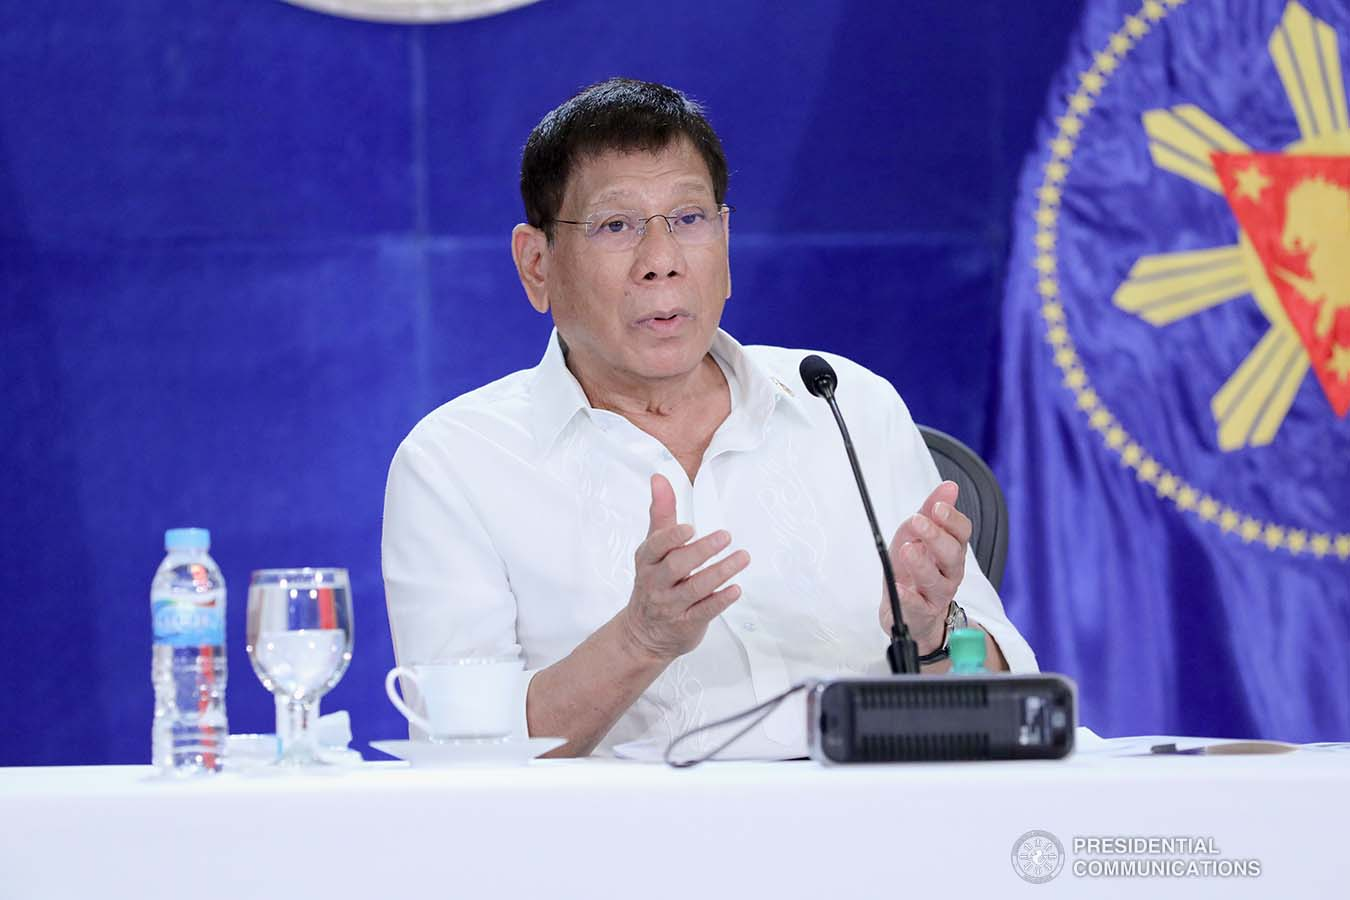 President Rodrigo Roa Duterte talks to the people after holding a meeting with the Inter-Agency Task Force on the Emerging Infectious Diseases (IATF-EID) core members at the Arcadia Active Lifestyle Center in Matina, Davao City on September 22, 2021. ARMAN BAYLON/ PRESIDENTIAL PHOTO